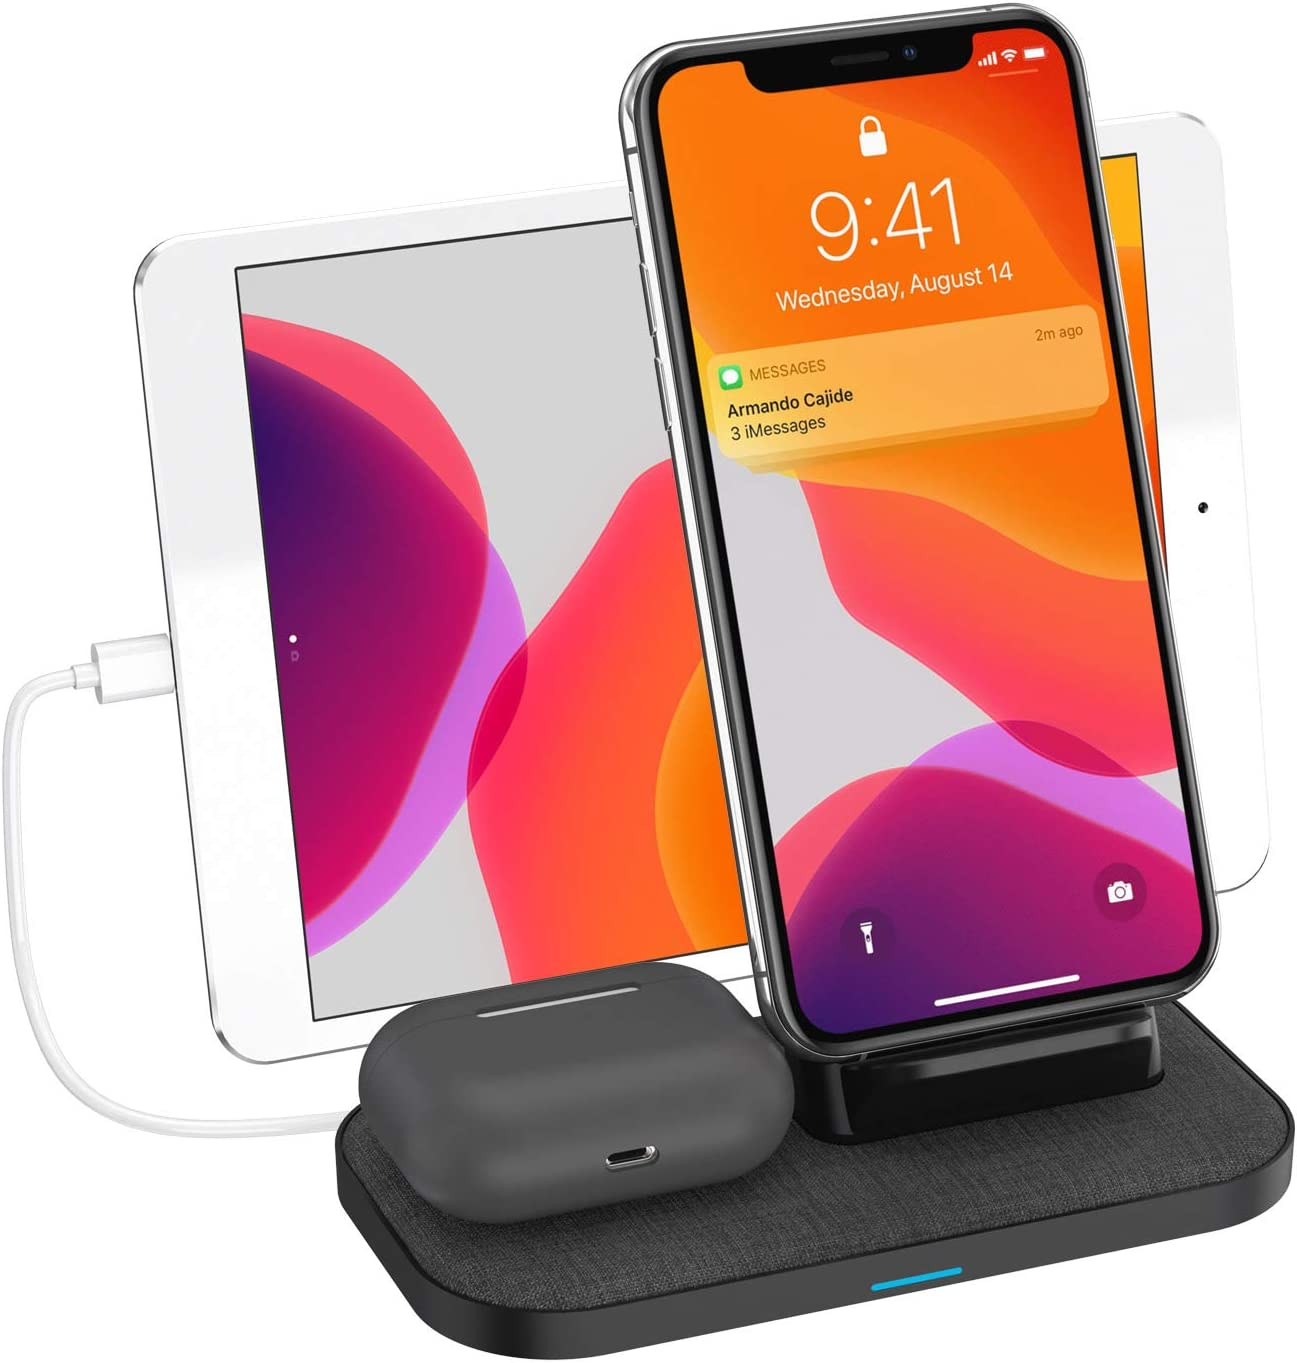 Wireless Charger, 3 in 1 Wireless Charging Station for iPhone Airpods Pro/2 and ipad/iwatch Galaxy Note Buds+, Wireless Charging Stand for iPhone 11/11Pro Max/XS Max/XR/XS/X/8,Galaxy S20/ Note 10/S10